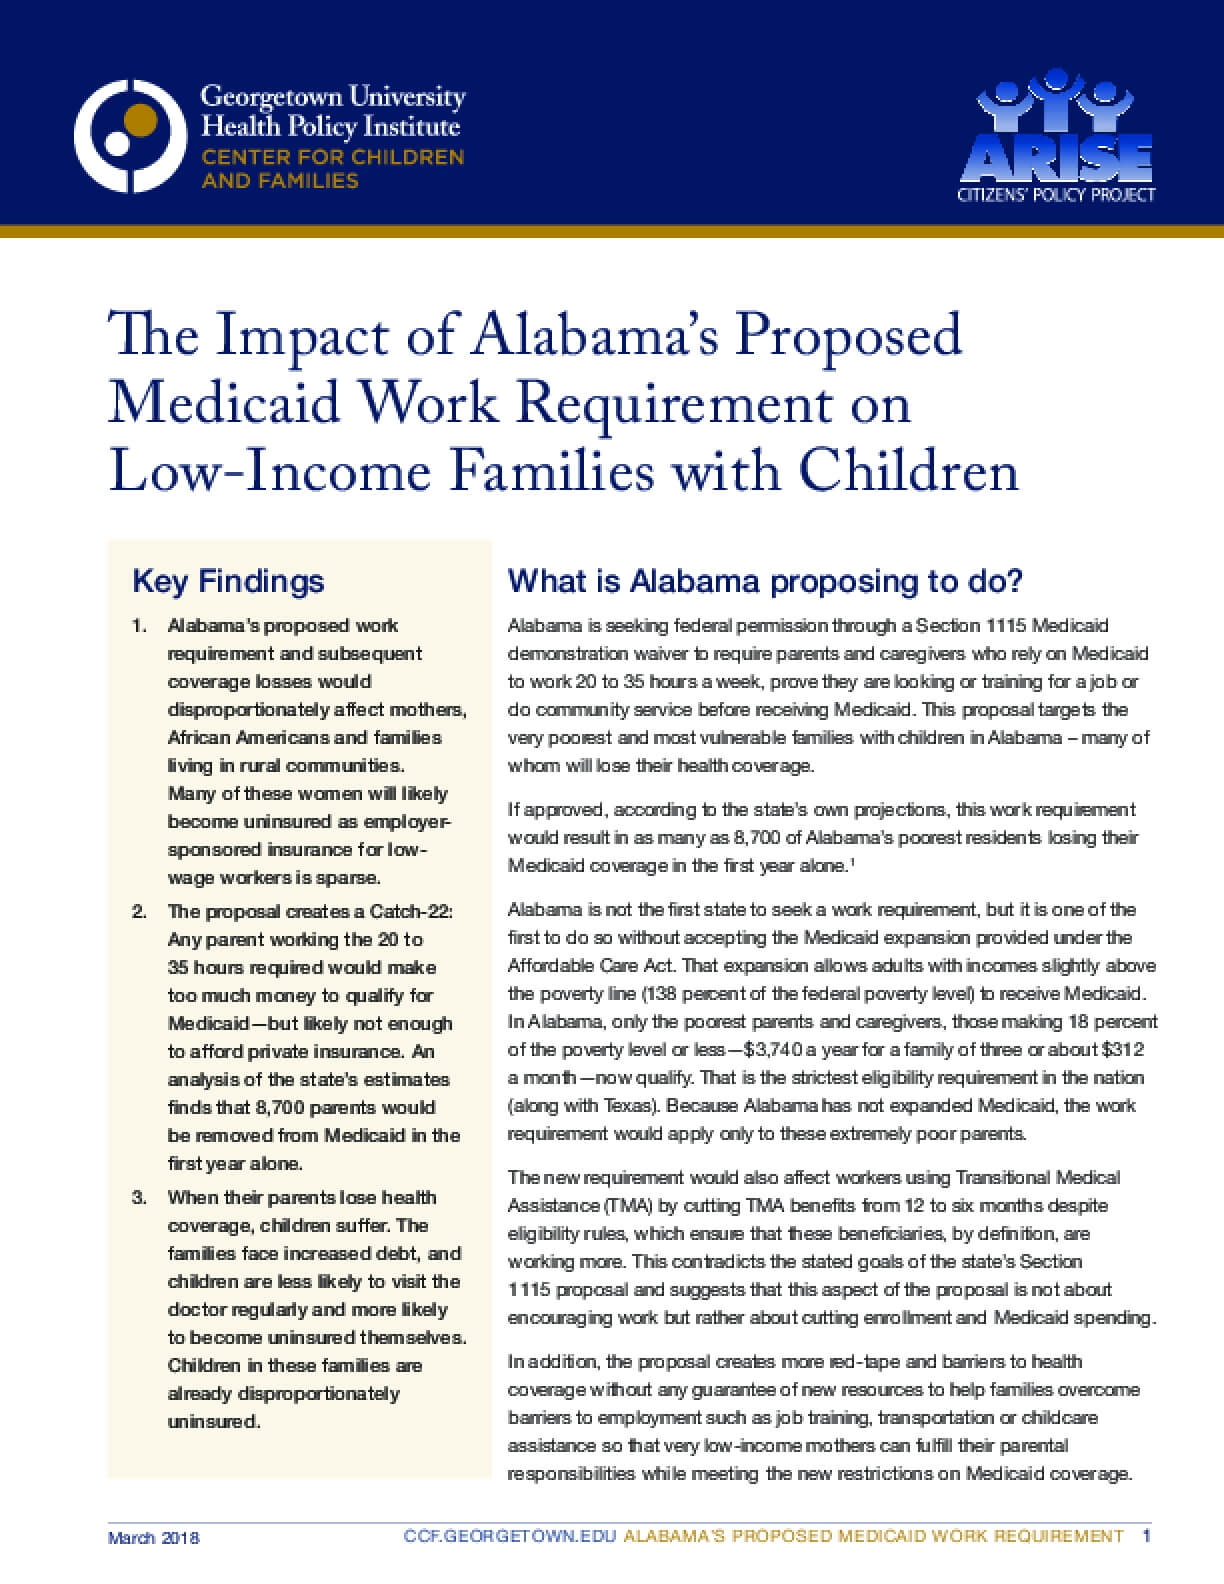 The Impact of Alabama's Proposed Medicaid Work Requirement on  Low-Income Families with Children